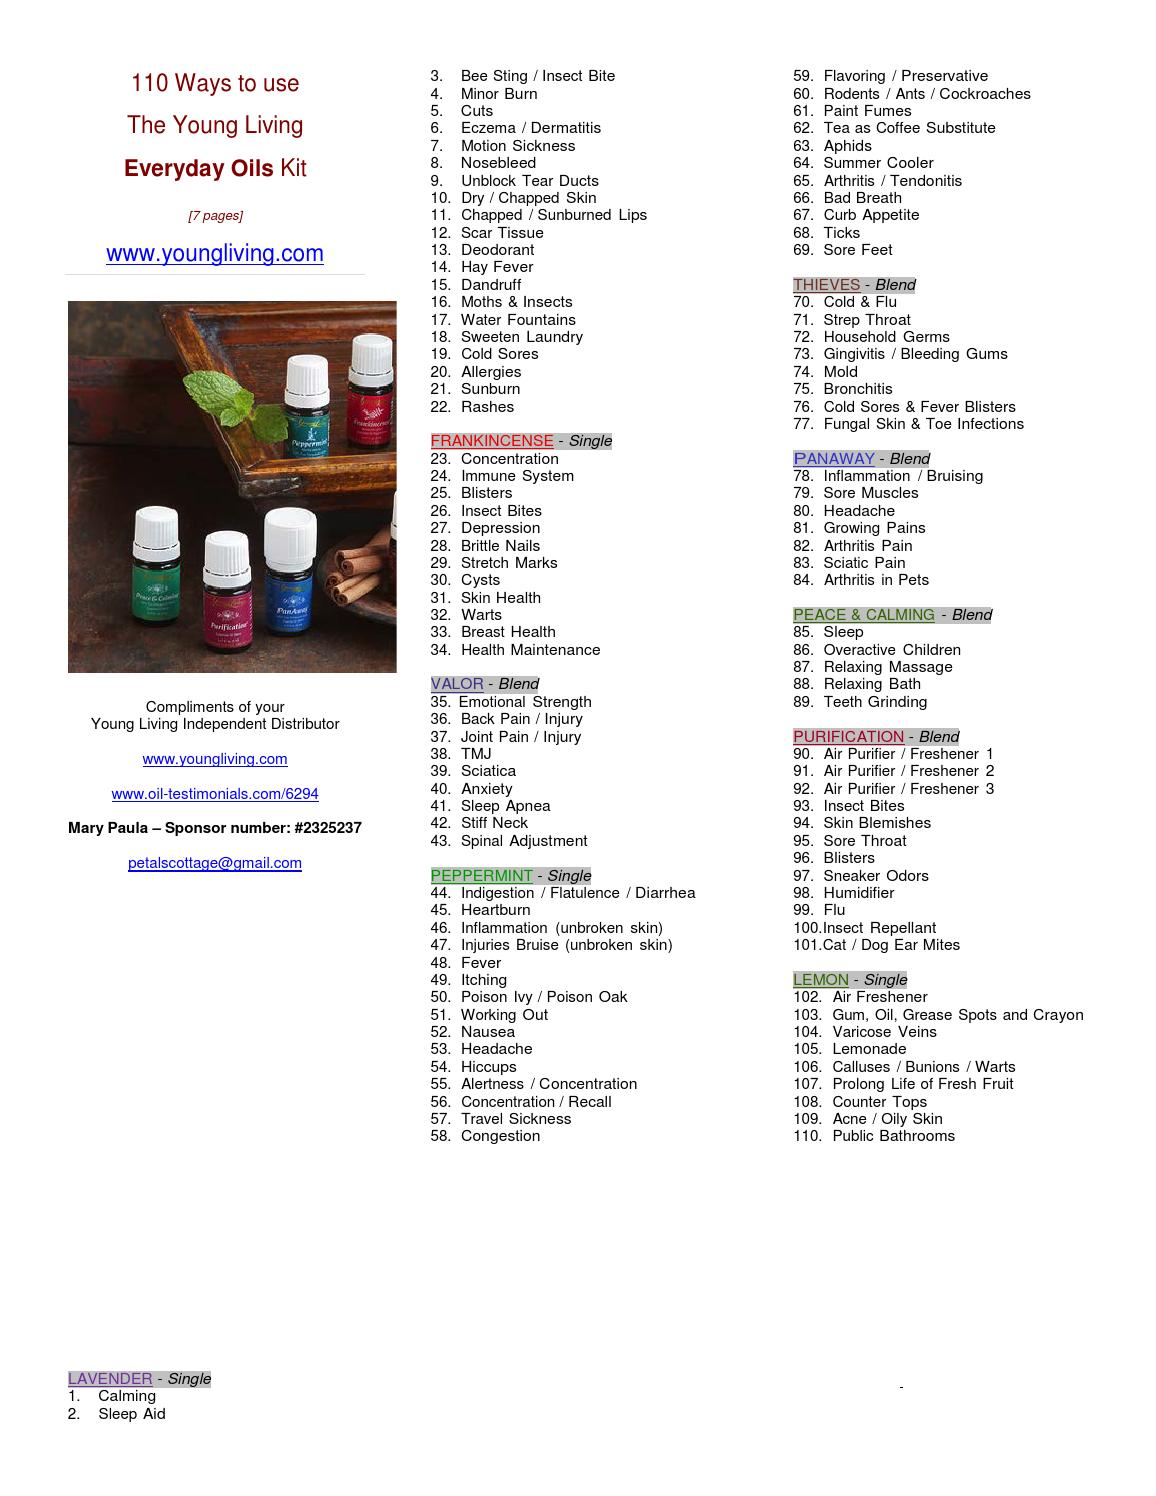 110 ways to use young living everday oils kit #2325237 by Young